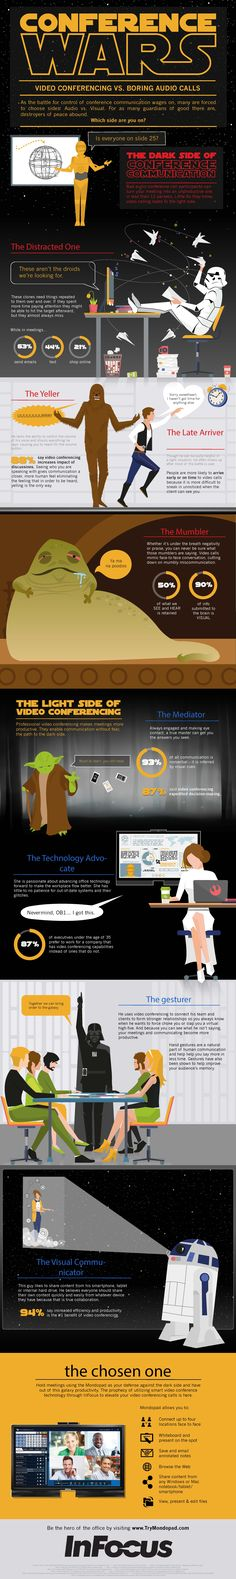 InFocus Conference Wars Infographic Read More: http://www.infocus.com/conference-wars